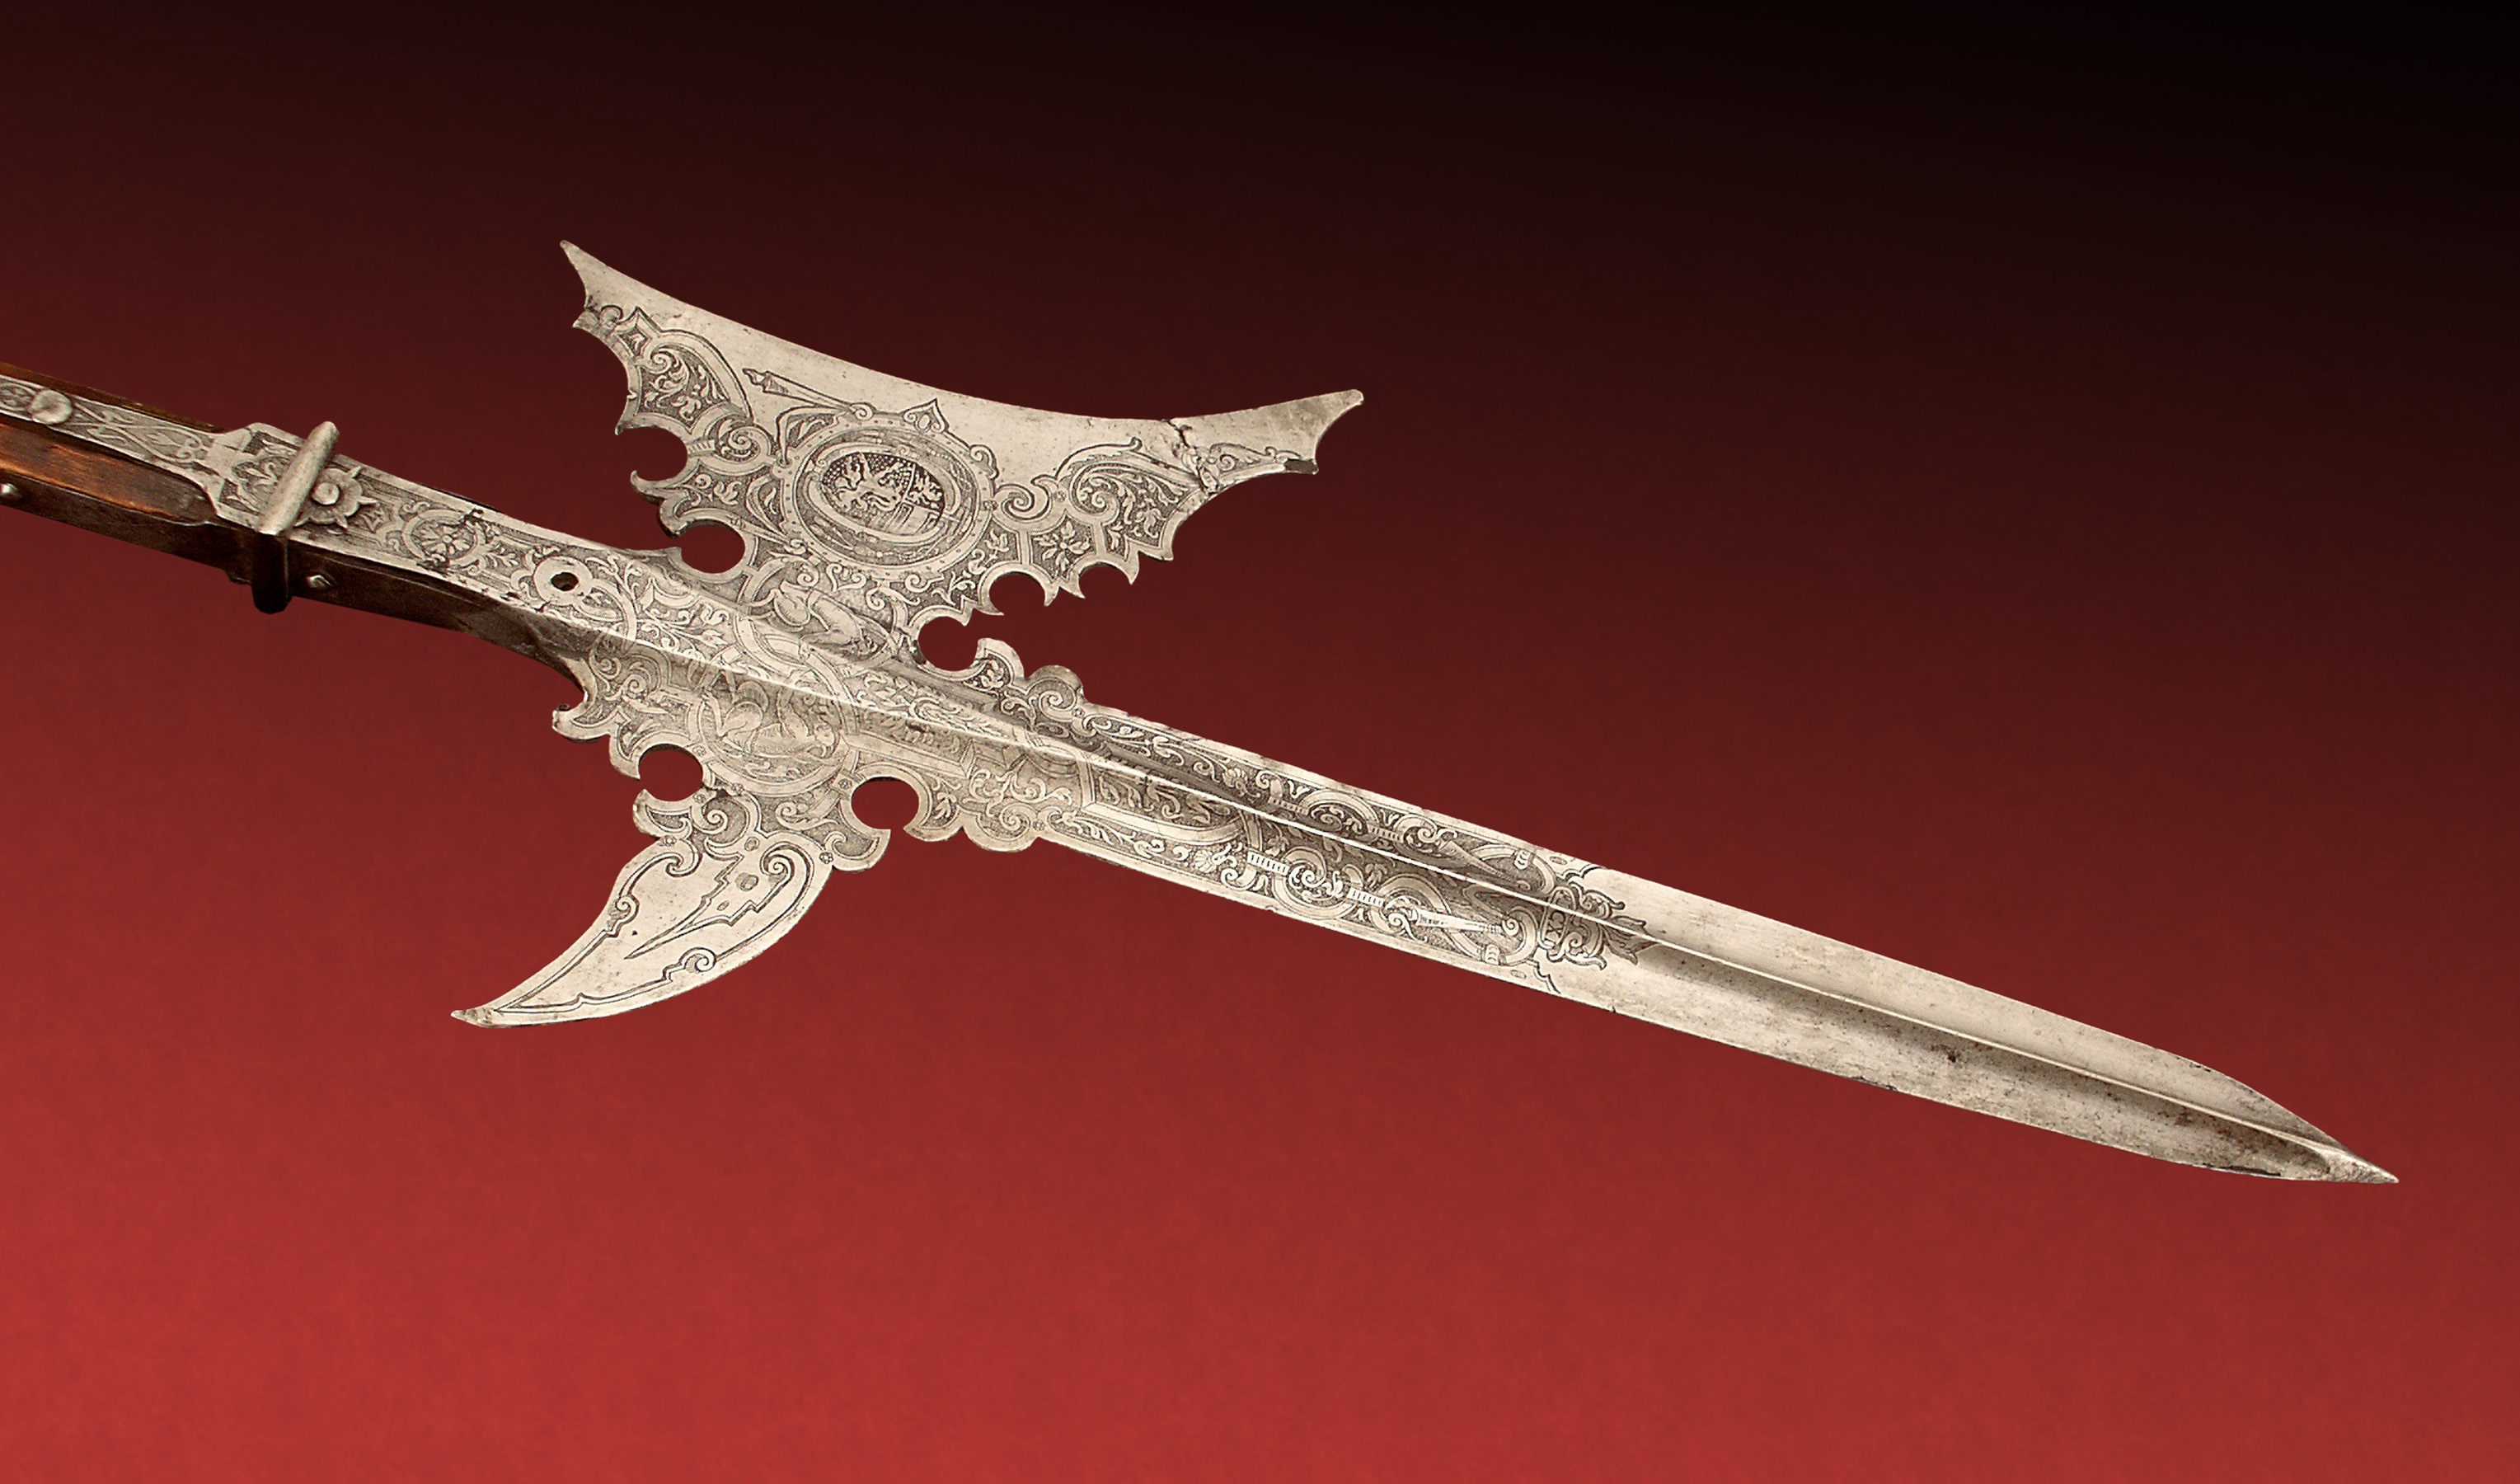 Halberd, dated 1611. Higgins Armory Museum